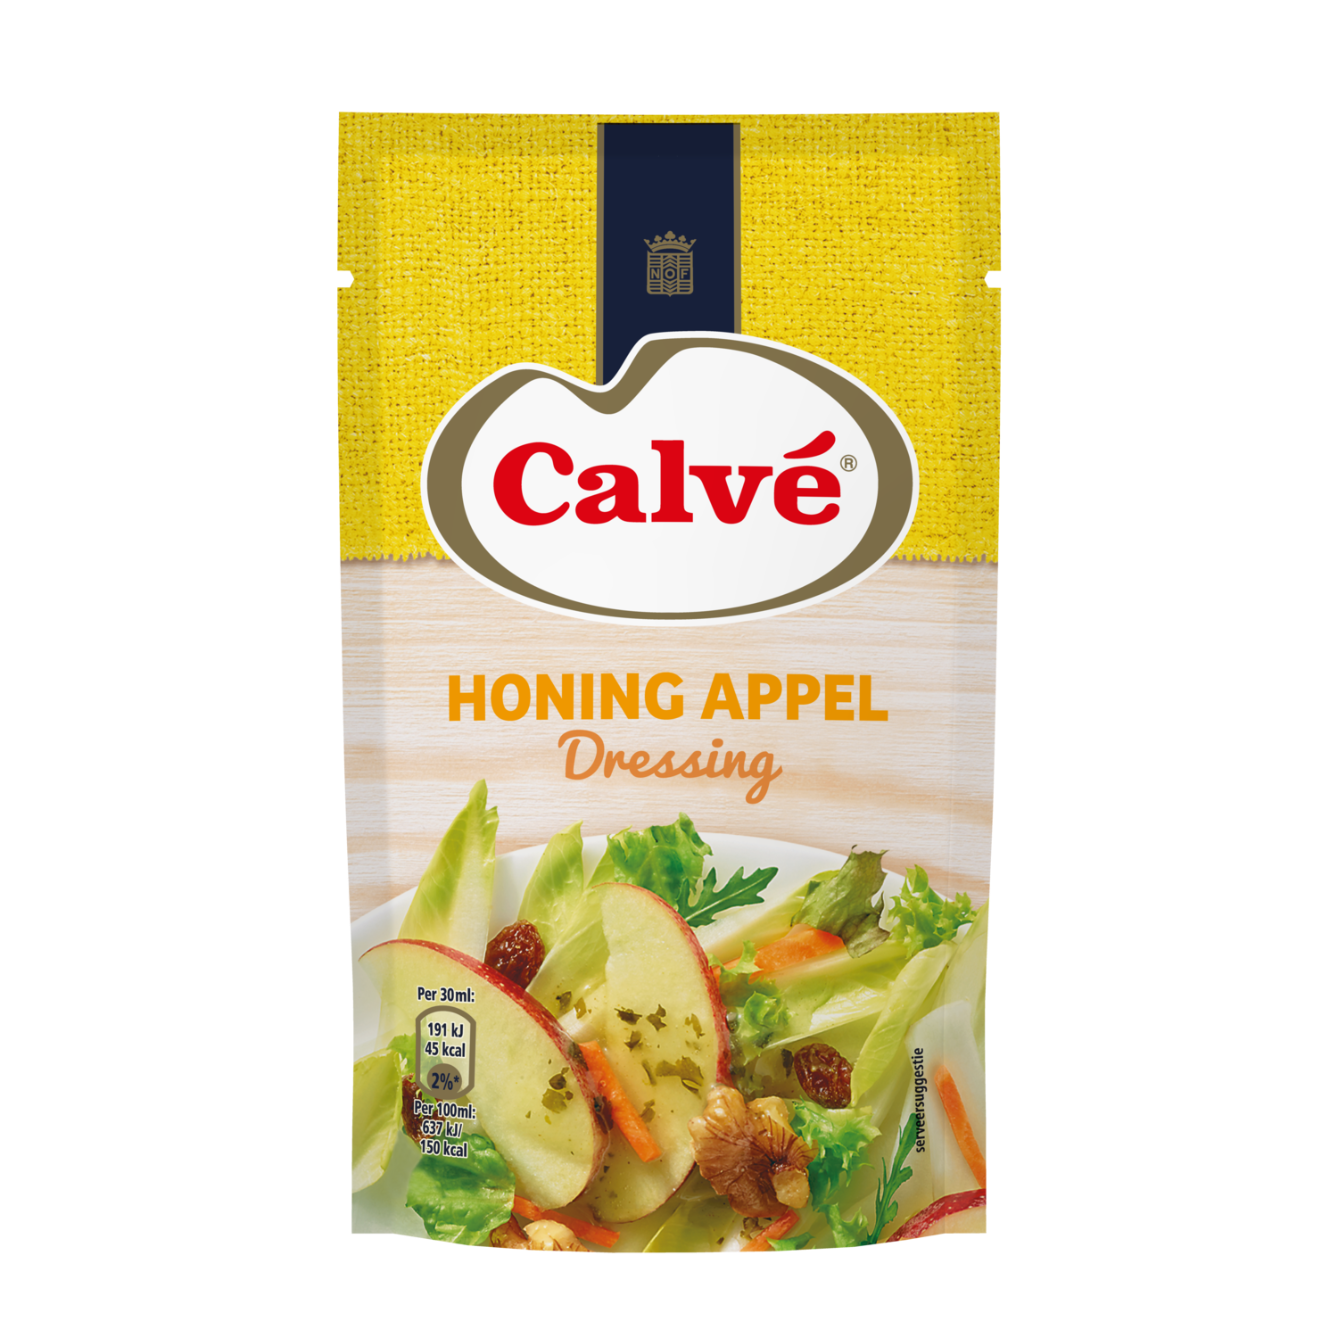 Calve Dressing Honing Appel 70 ml 8712423003835